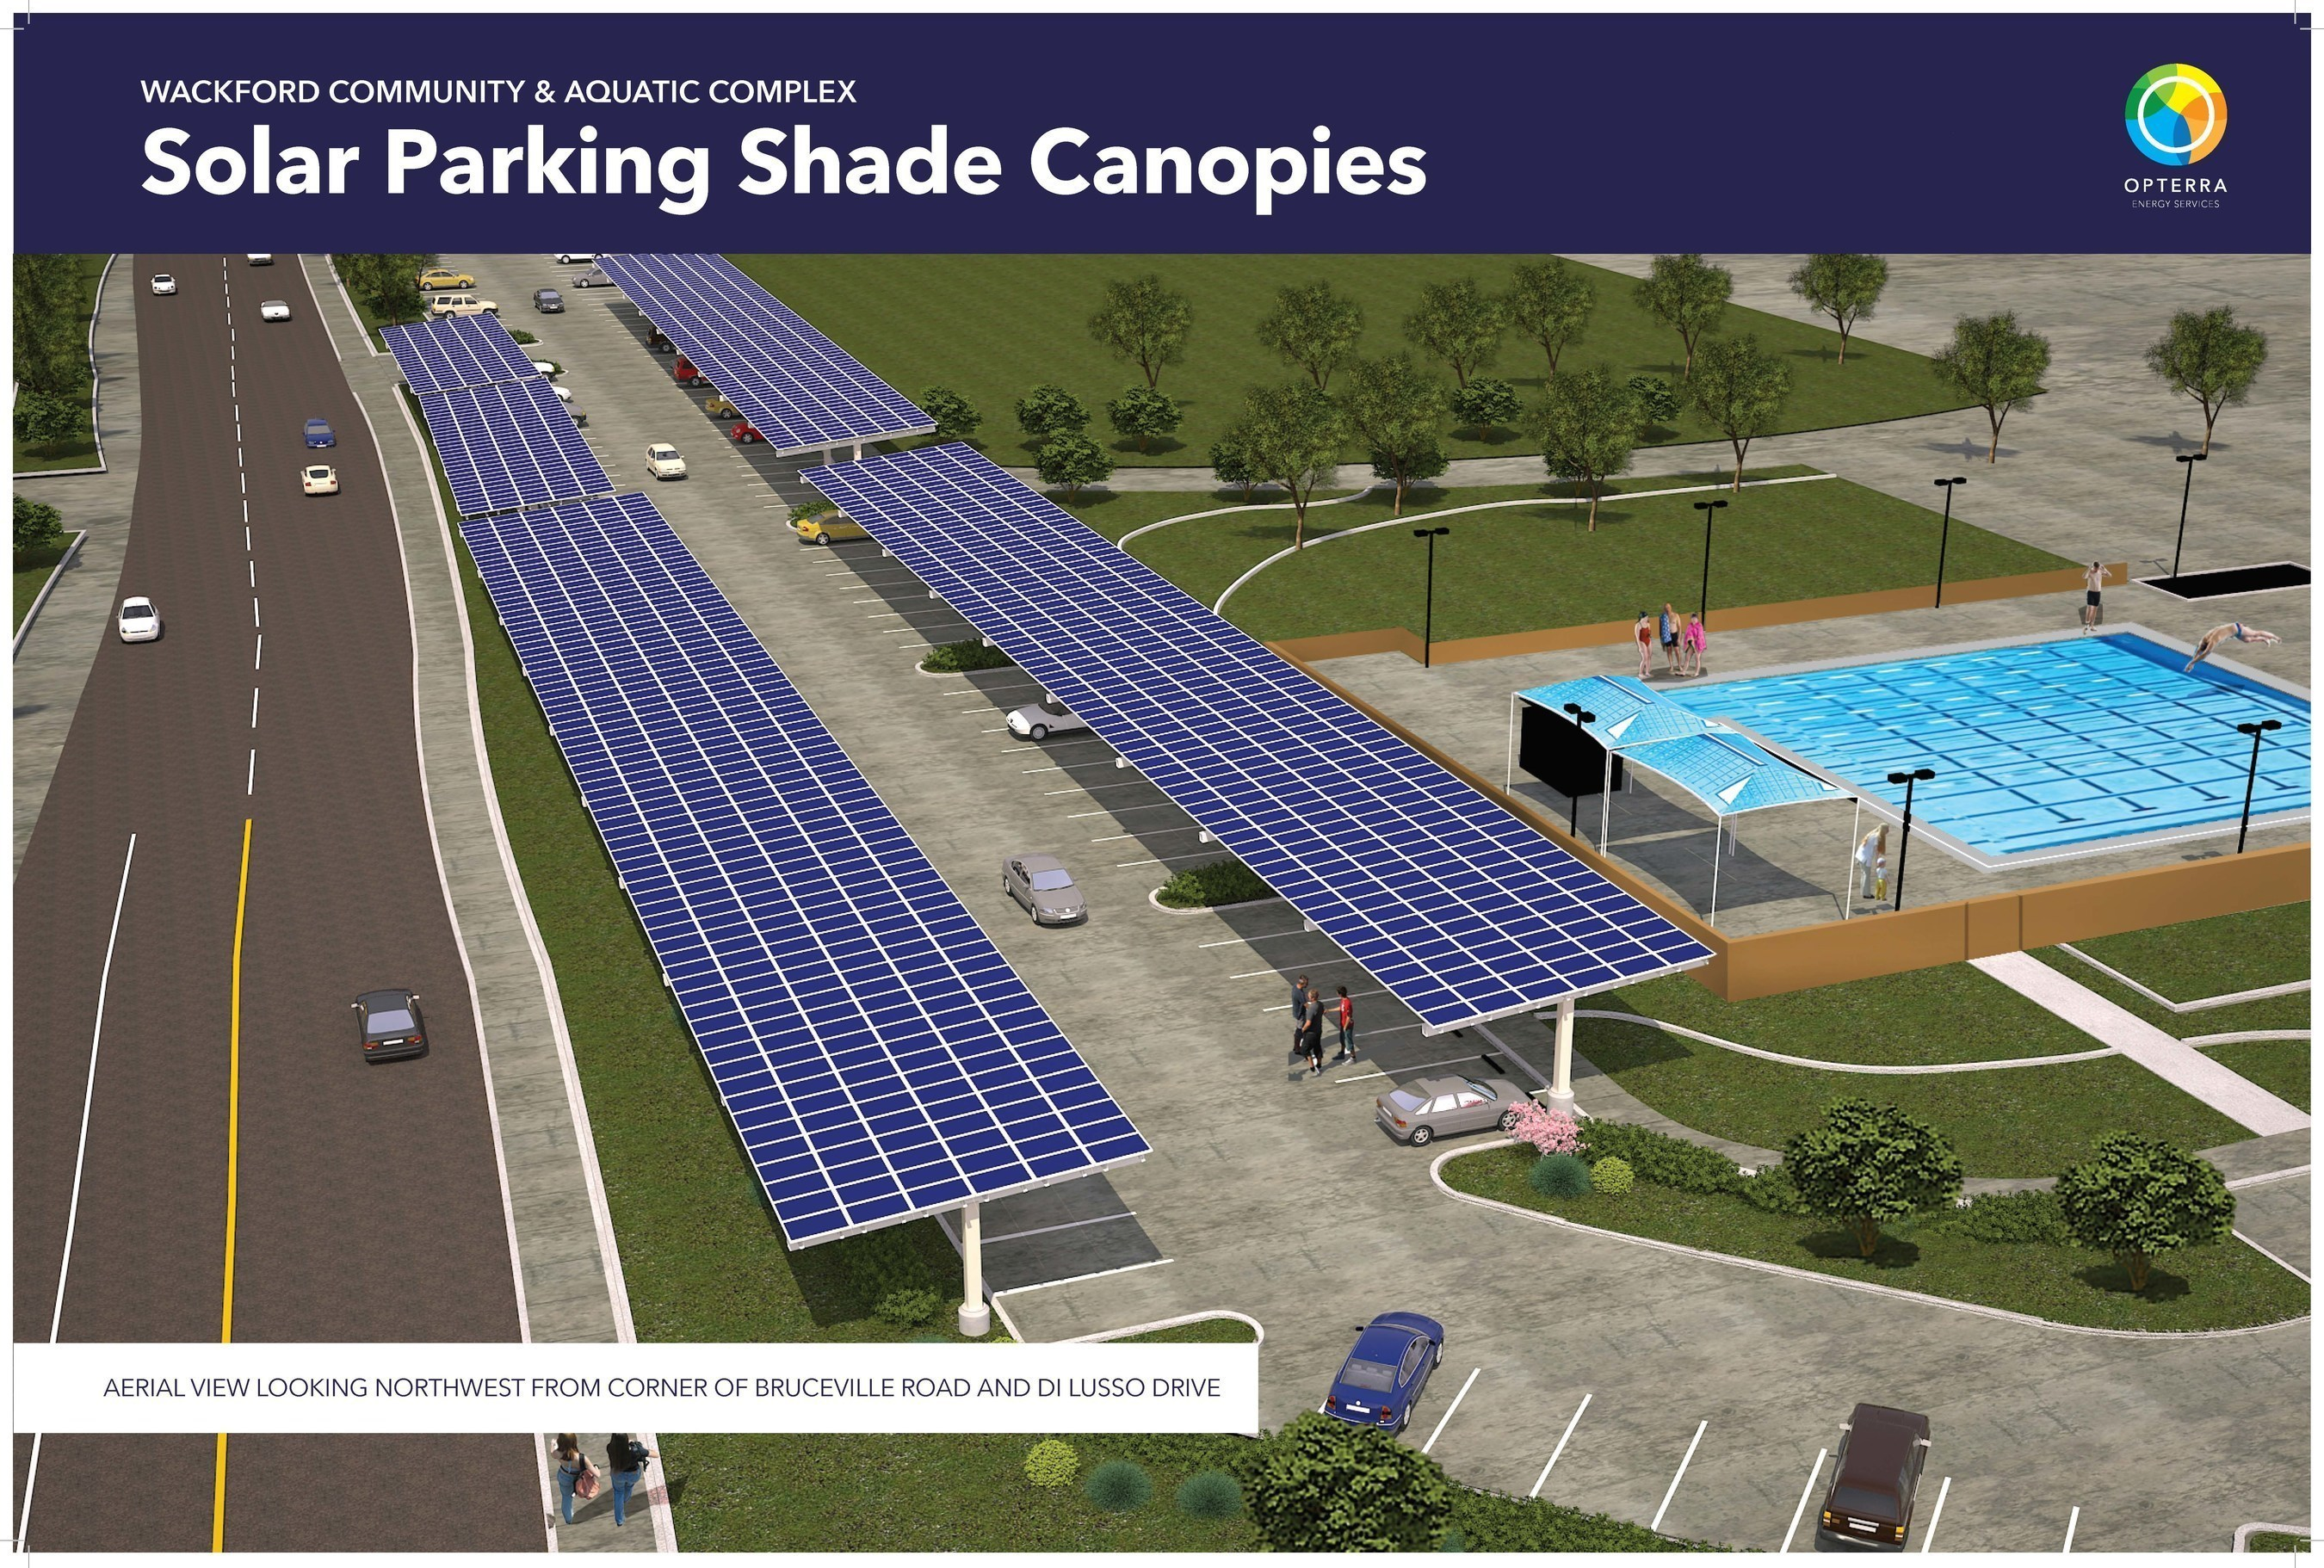 Rendering of one of the solar parking shade structures Cosumnes CSD will begin implementation on with OpTerra in fall 2016.